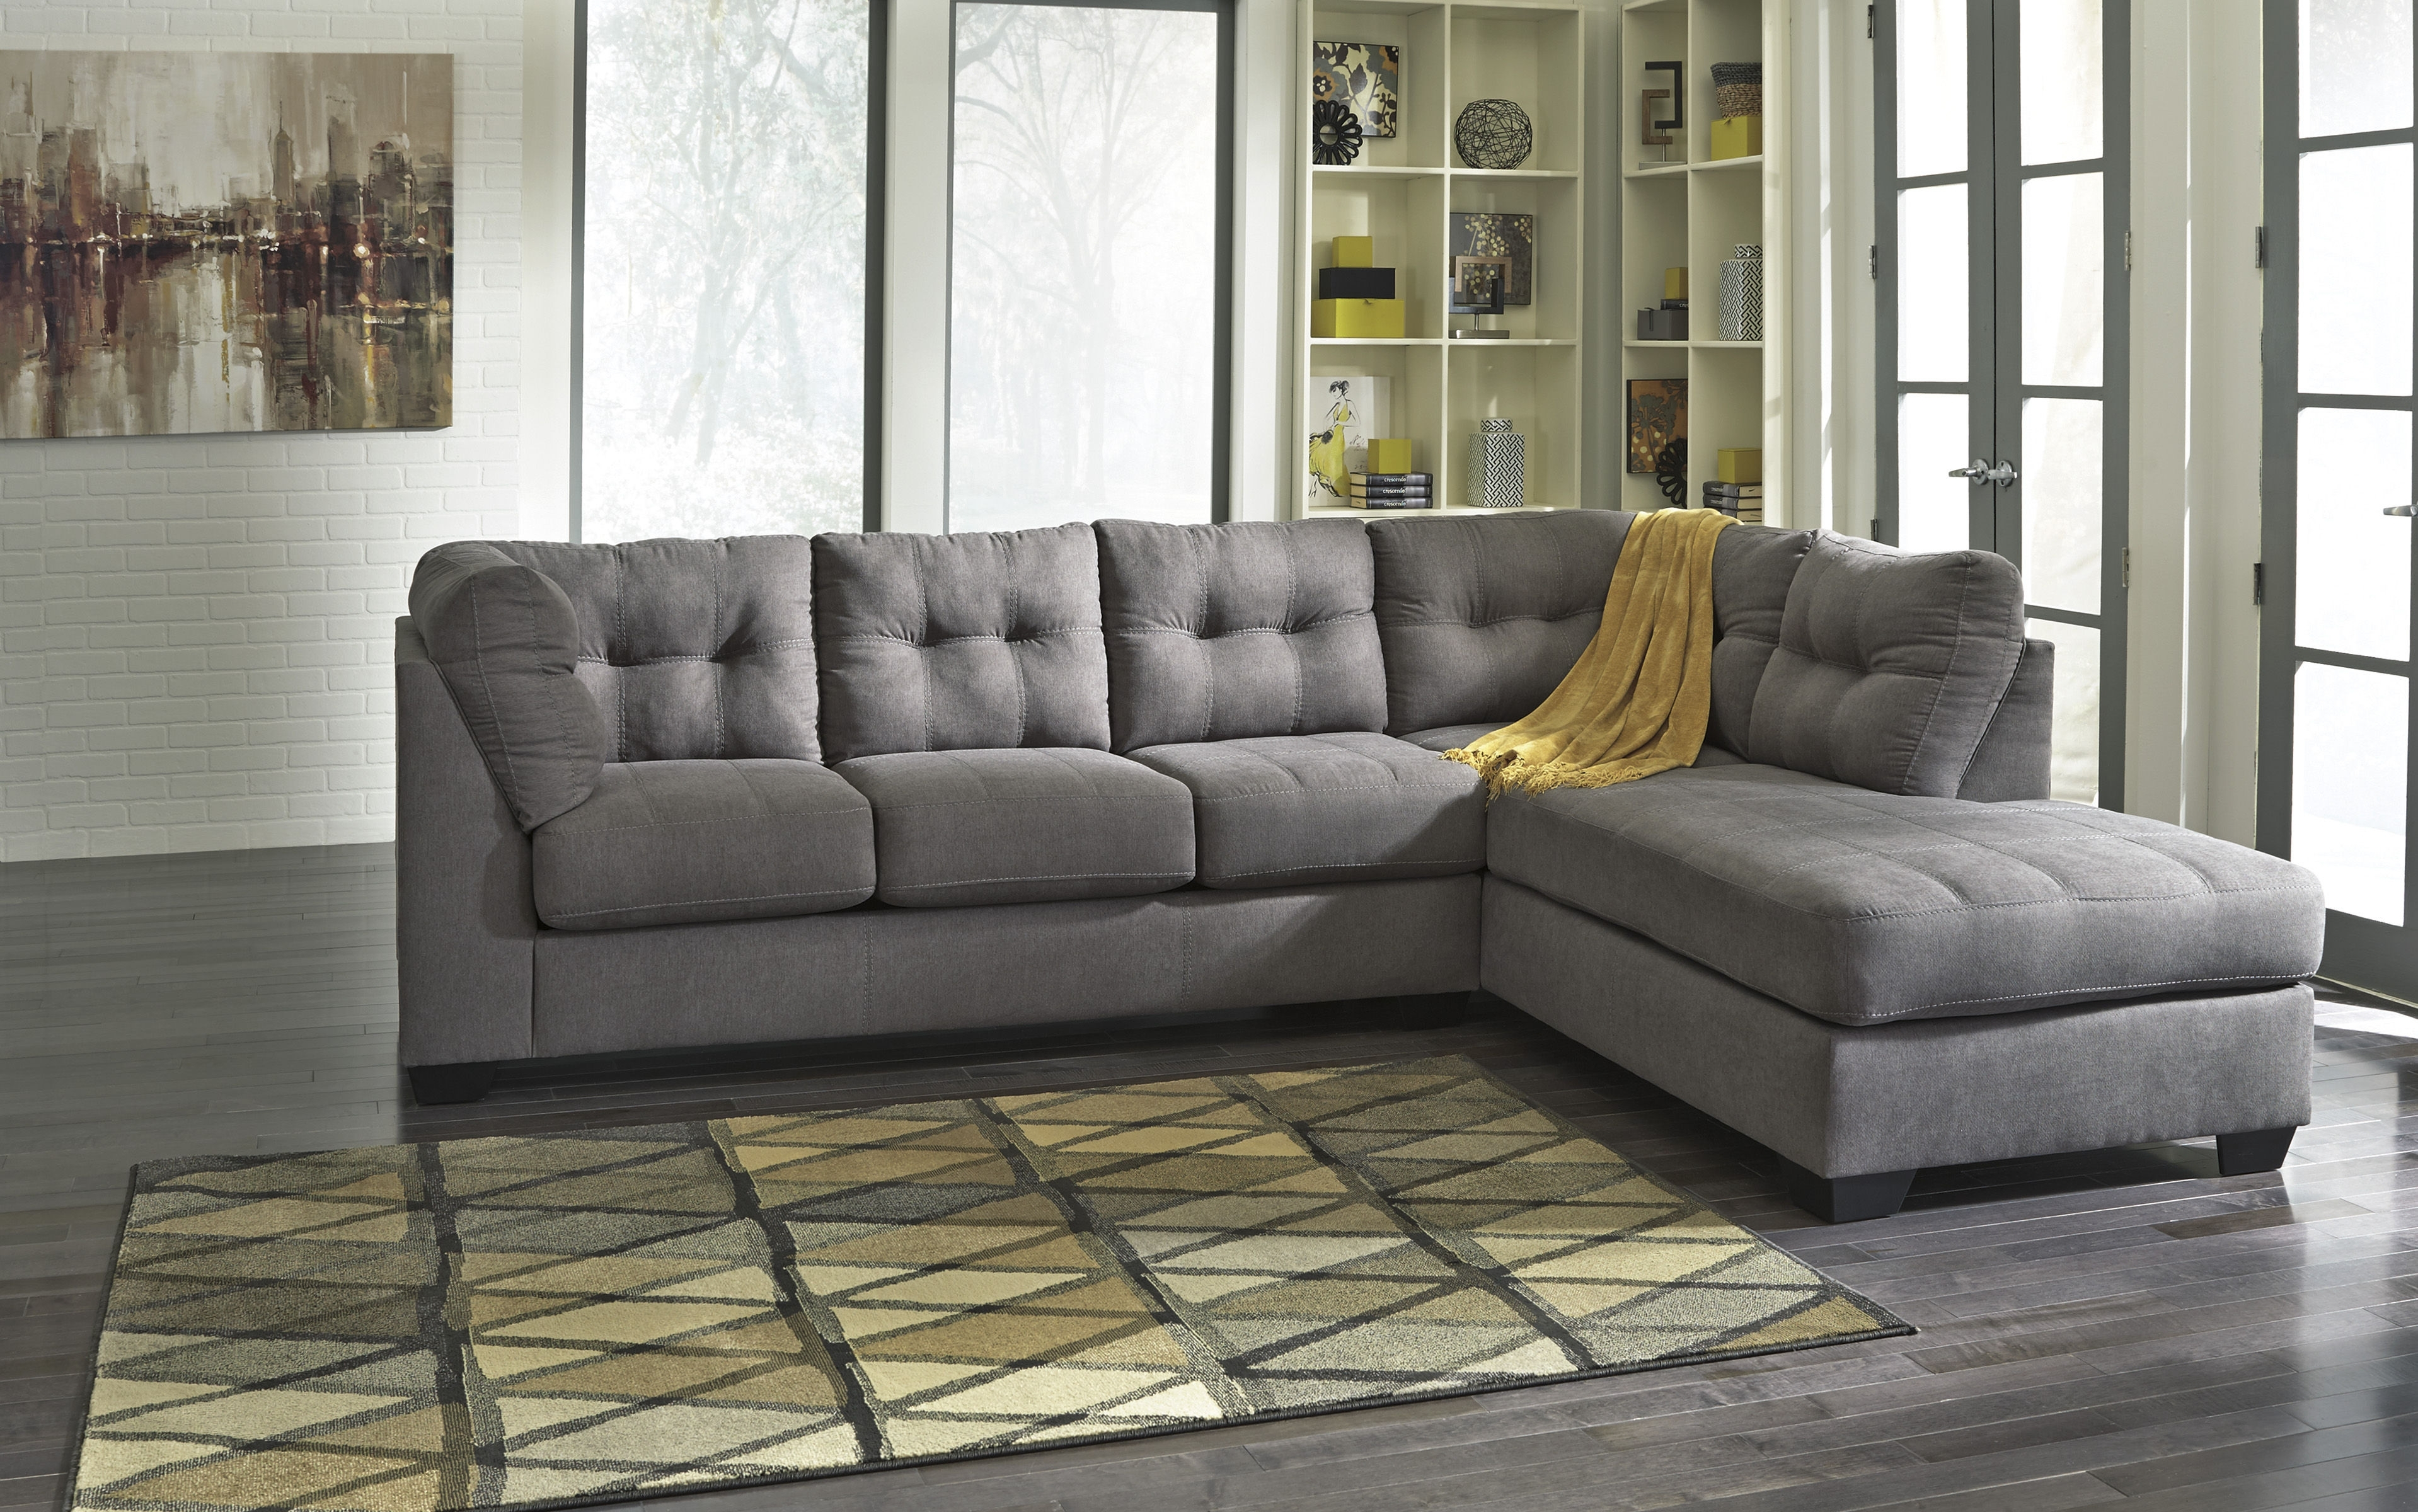 Ashley Furniture Maier Charcoal Raf Chaise Sectional | The Classy Home With Lucy Dark Grey 2 Piece Sleeper Sectionals With Laf Chaise (Image 2 of 25)